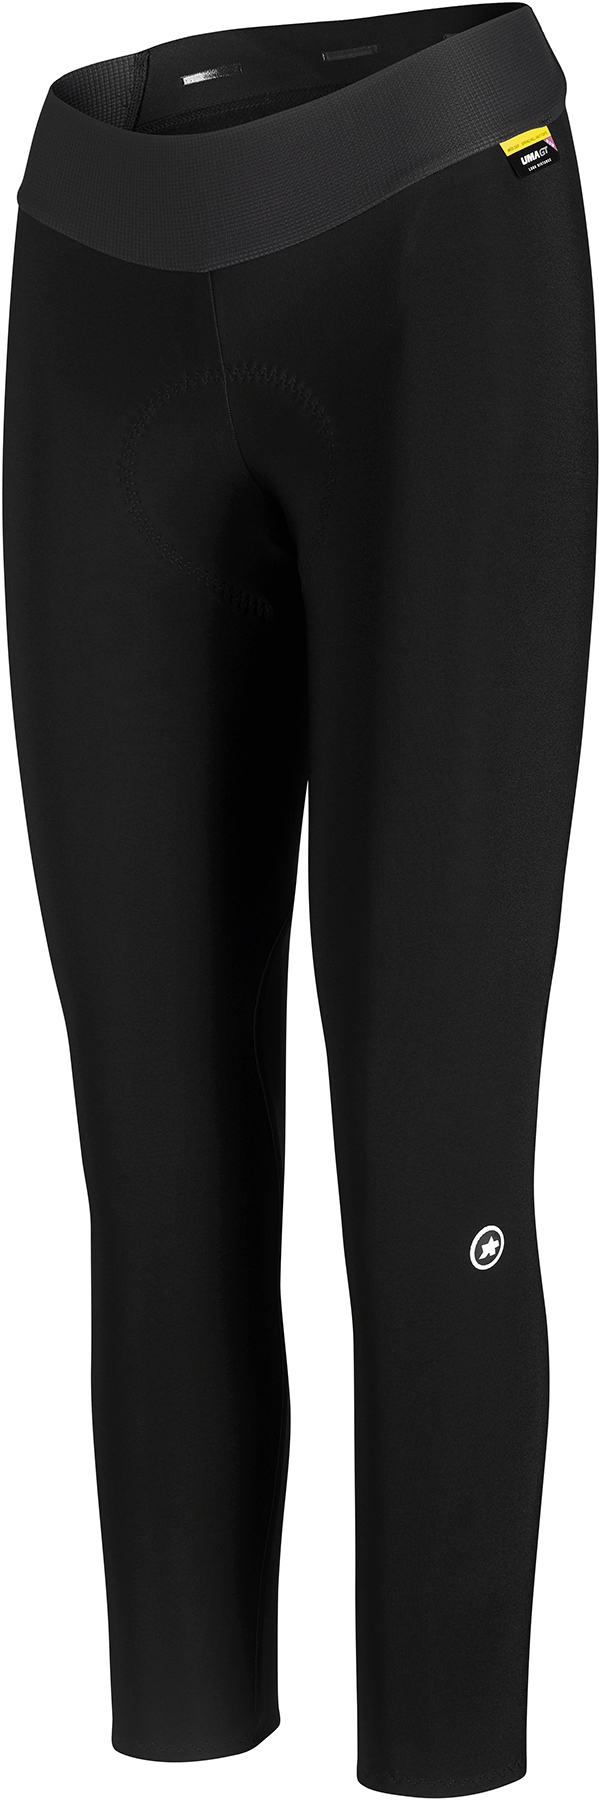 Assos Women's UMA GT Spring Fall Half Tights | Trousers